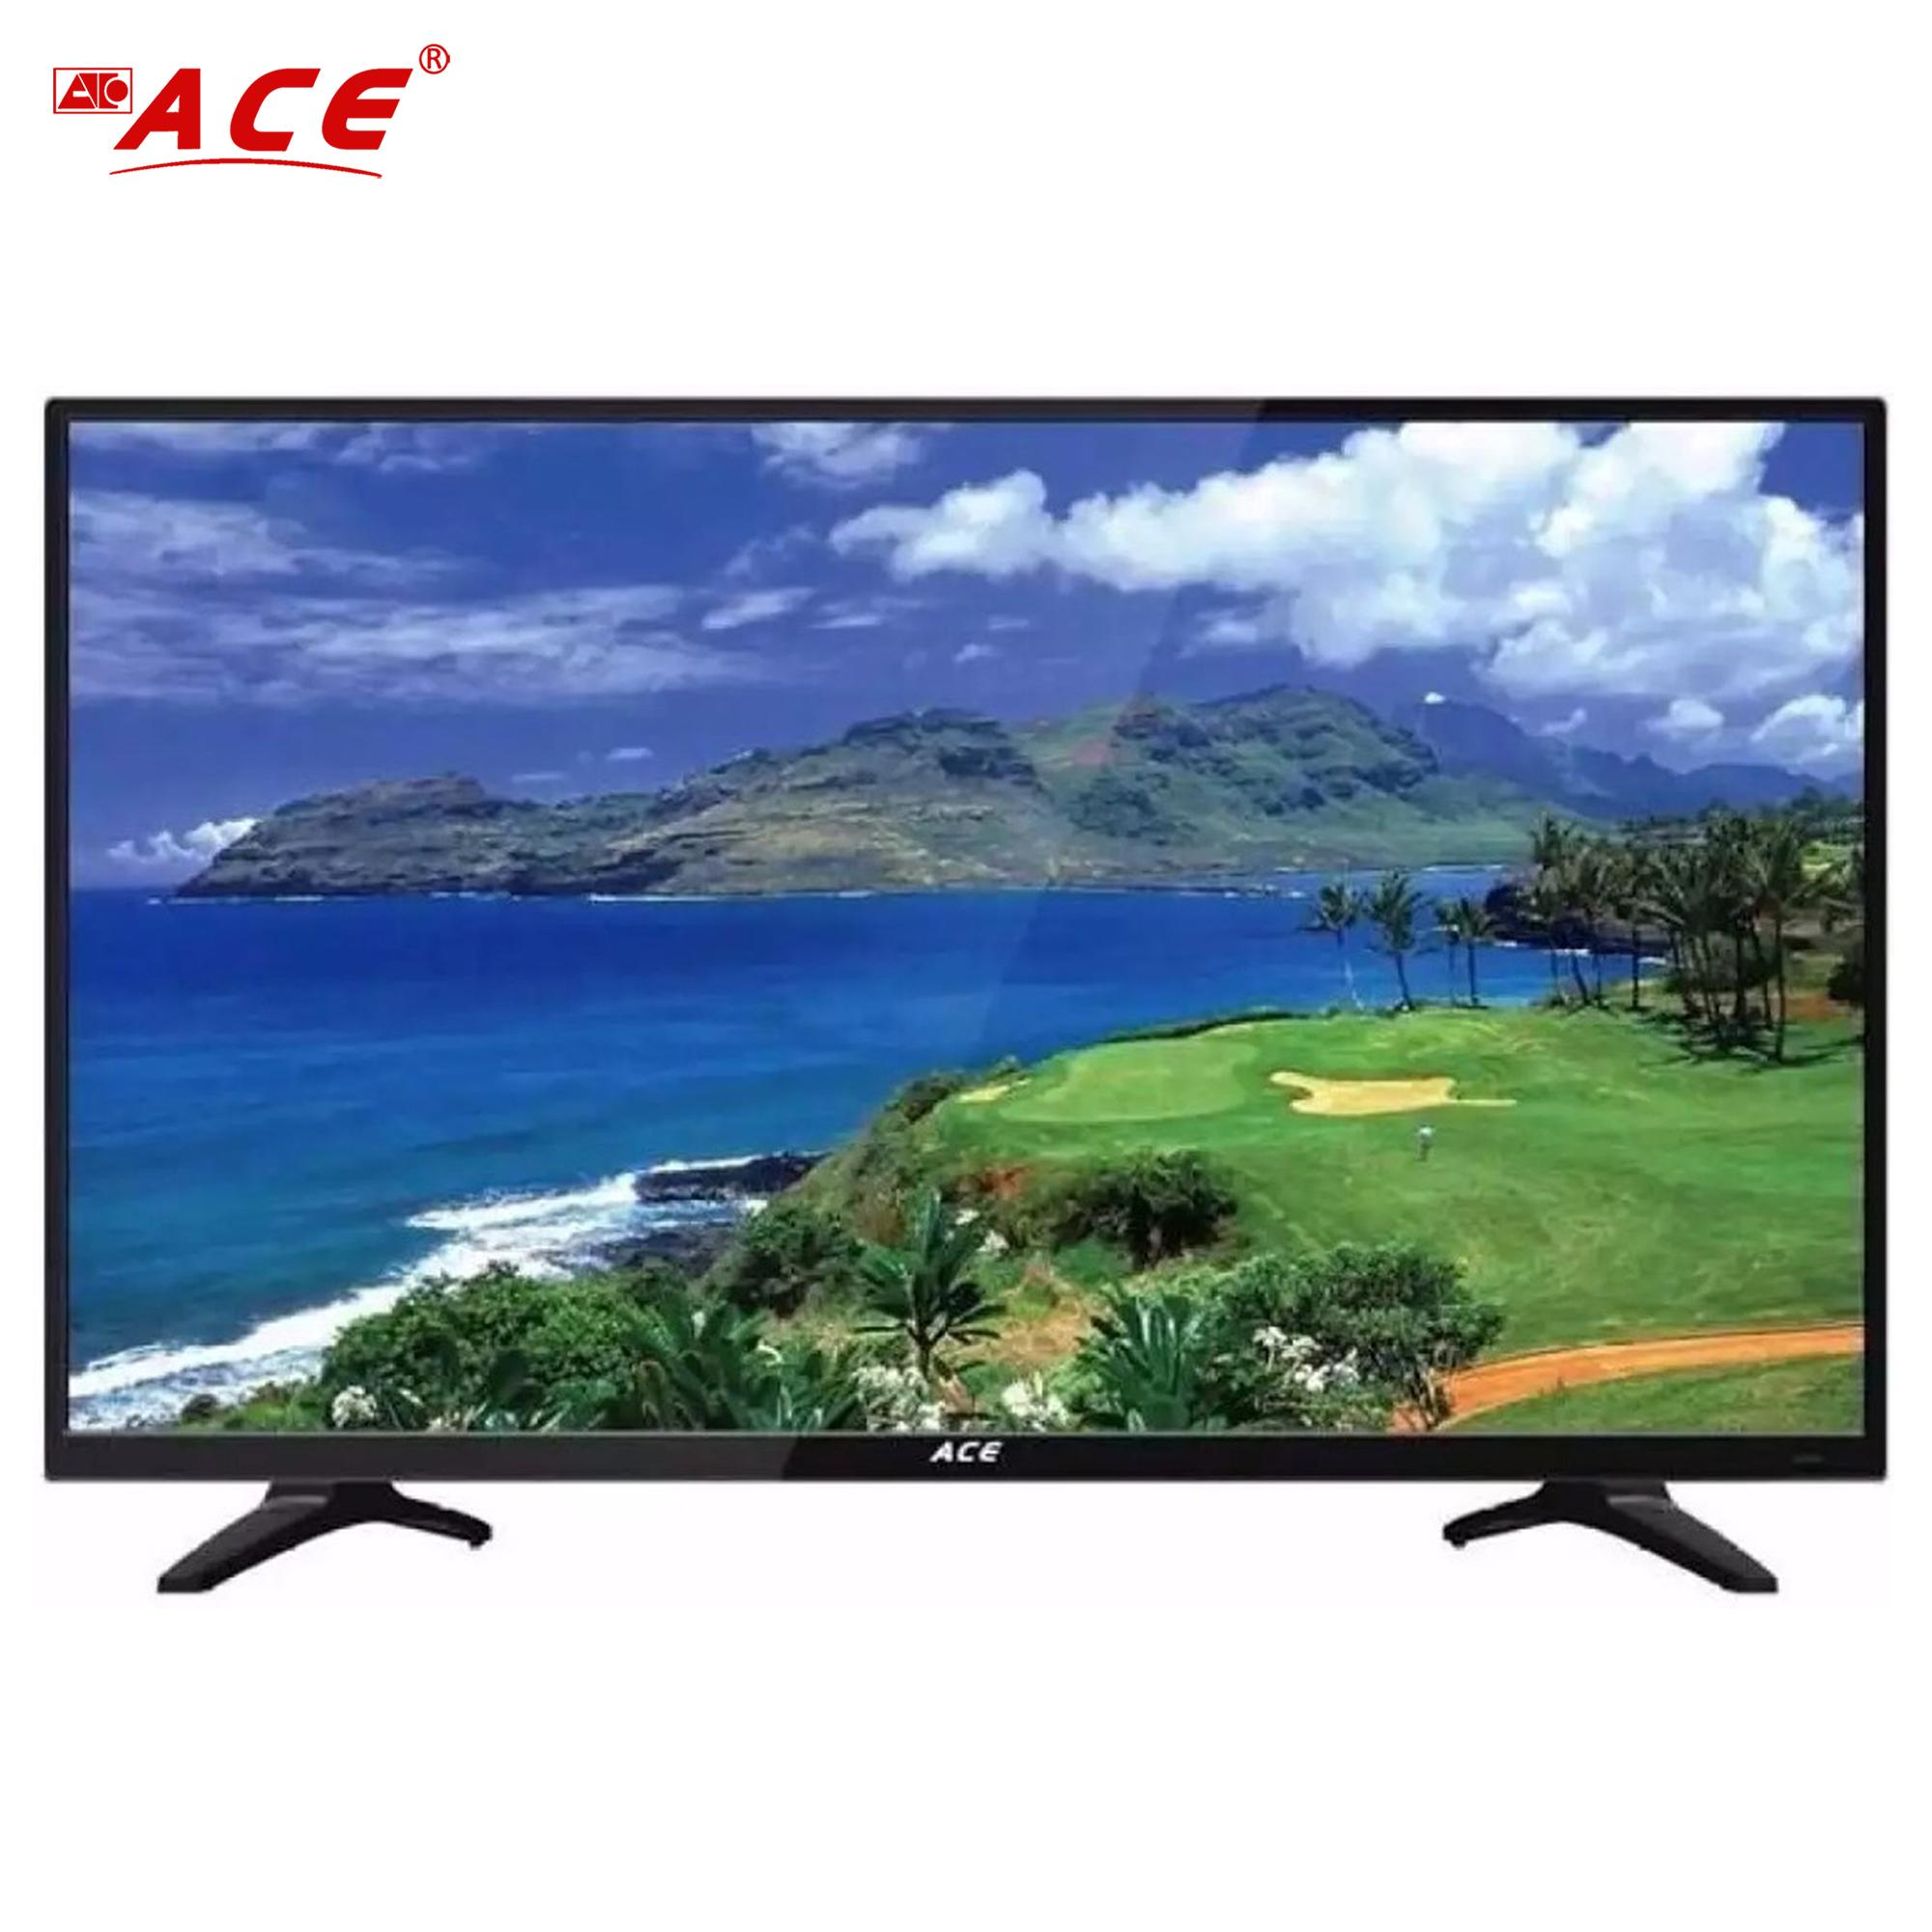 Electronics for sale - Consumer Electronics price, brands & offers